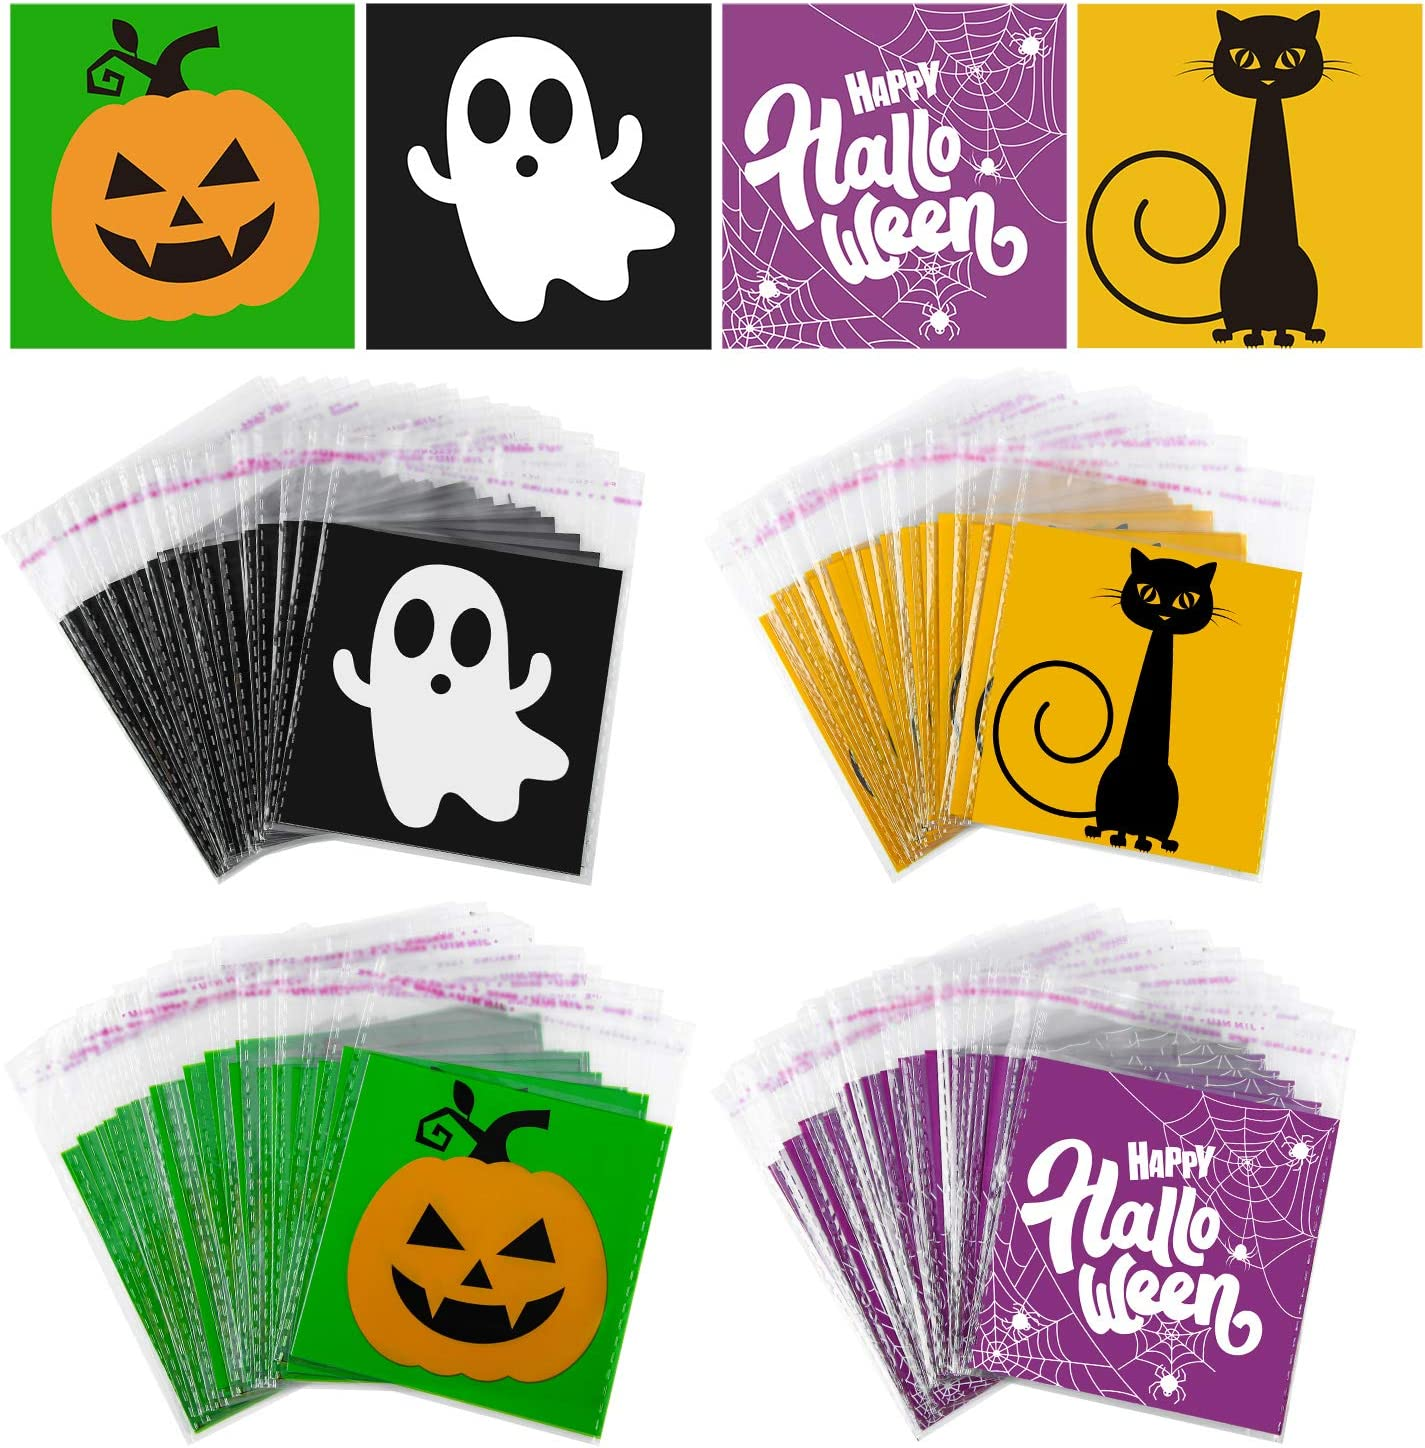 URATOT 200 Pack Halloween Self Adhesive Candy Bags Halloween Trick or Treat Bags Clear Snacks Bags Halloween Party Favors Candy Cookie Bags